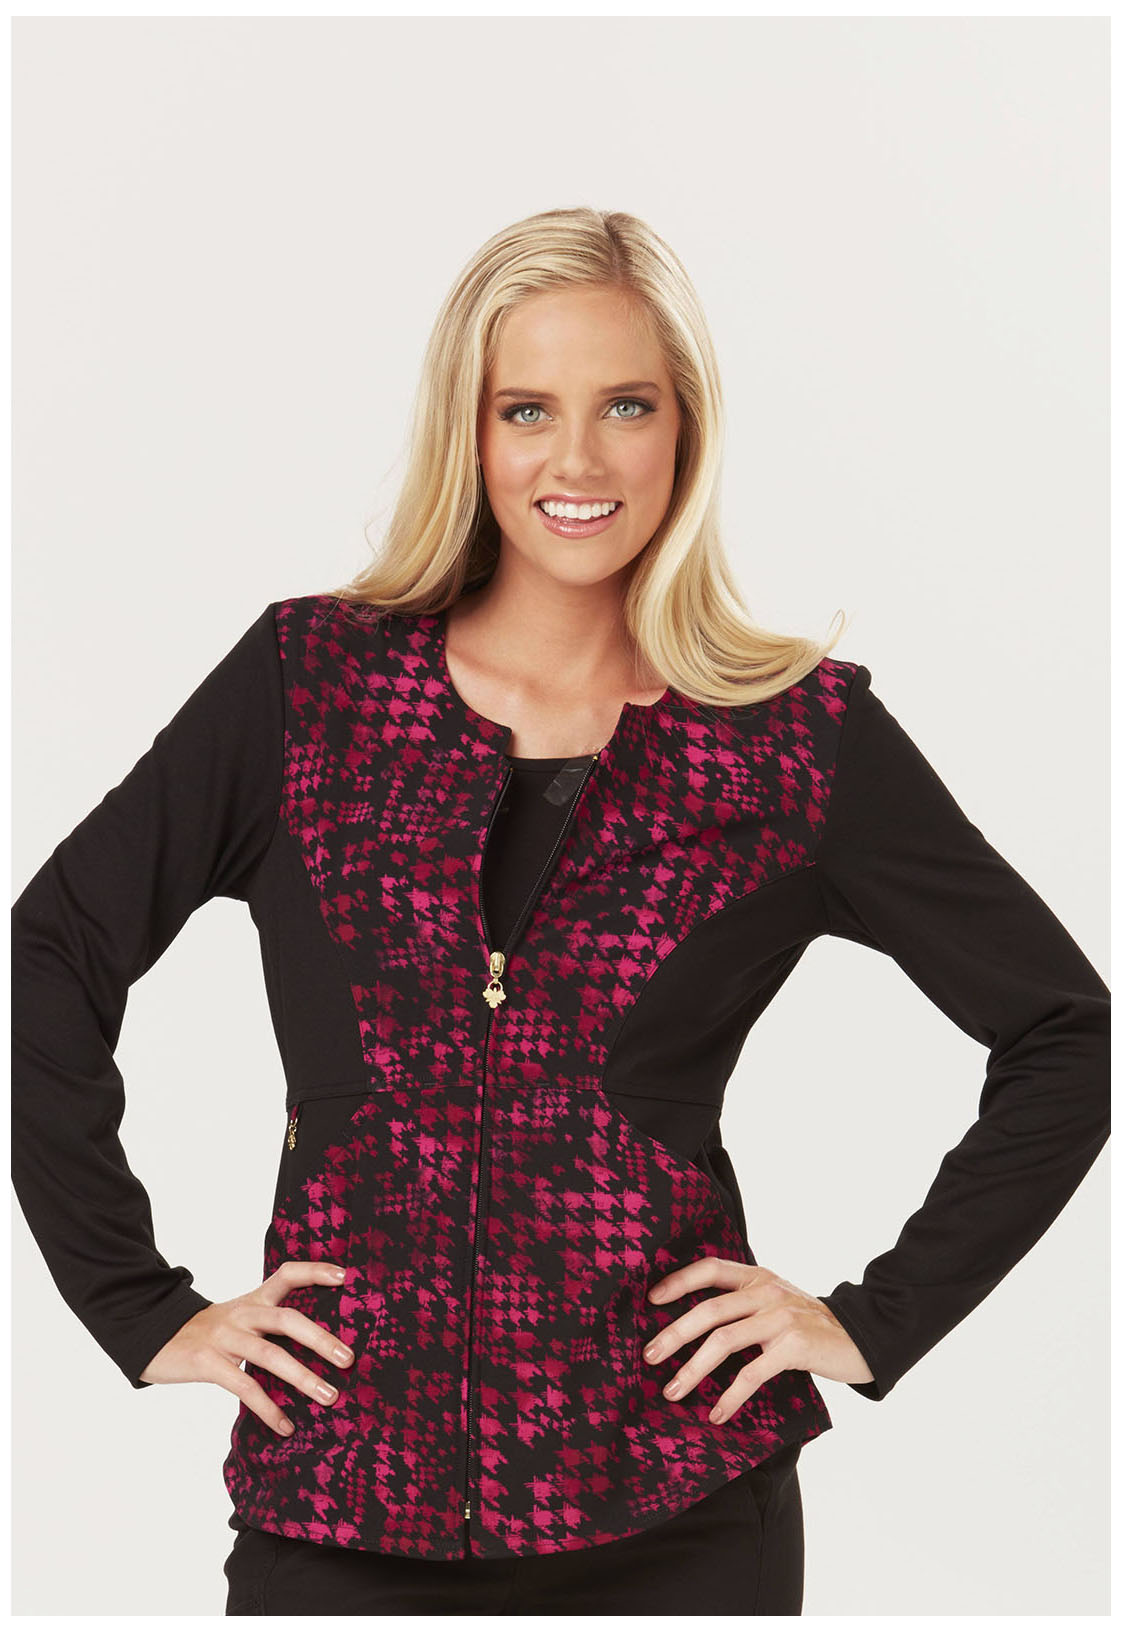 Careisma 'A Passion For Pink' Zip Front Scrub Jacket